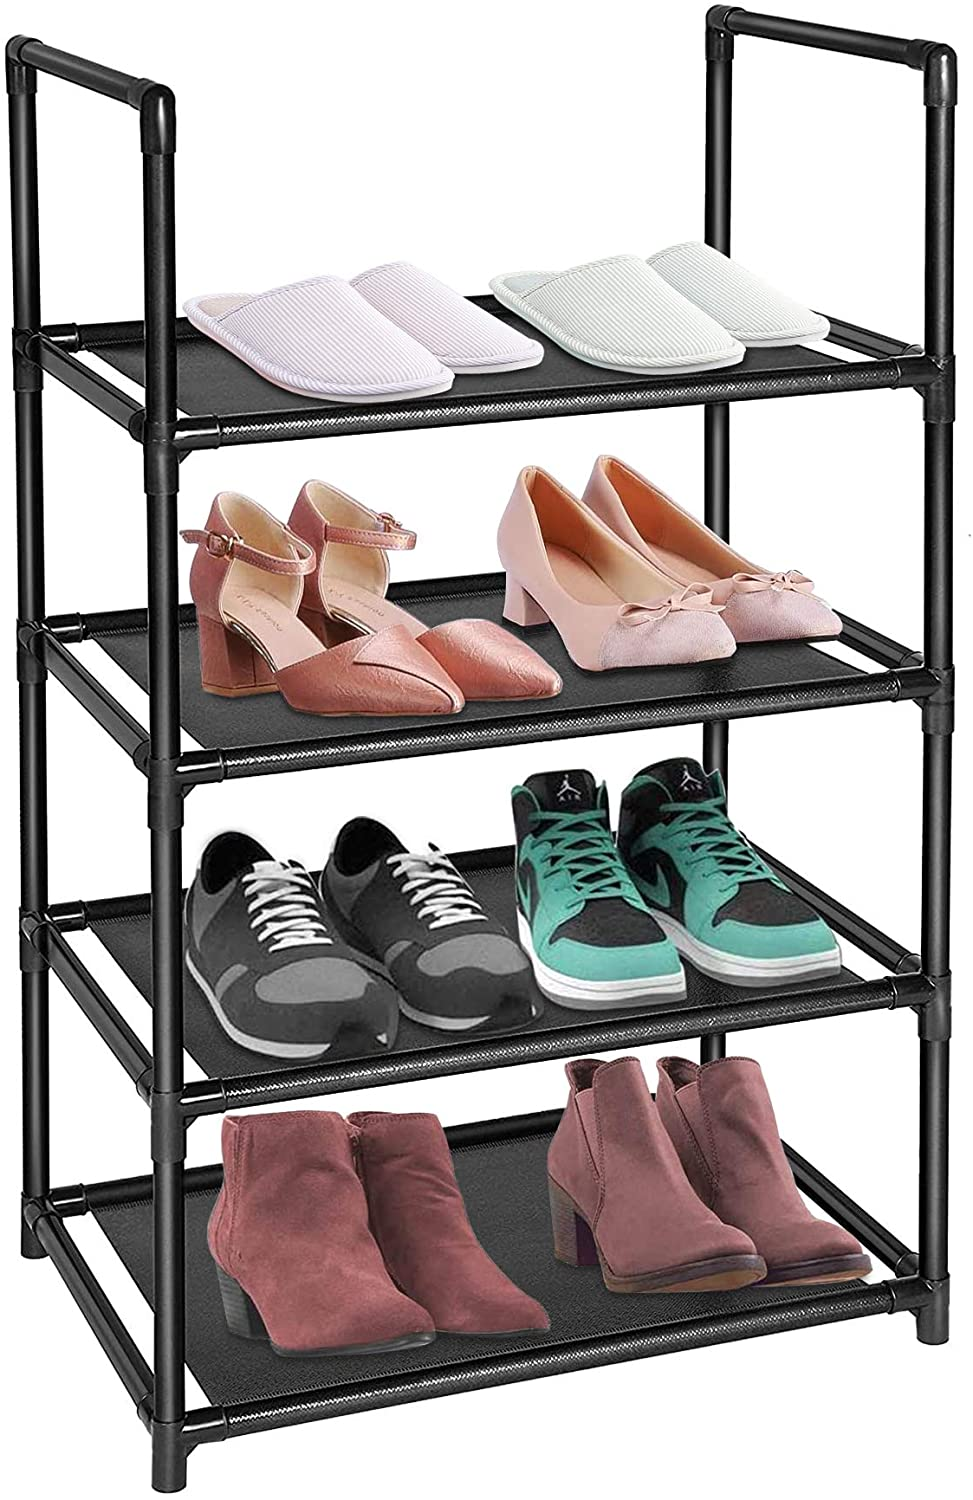 Sunvito 4 Tiers Shoe Rack, Shoe Rack Organizer for 8-10 Pairs, Space Saving Shoe Shelf, Durable Free Standing Shoe Storage Cabinet - 18 x 12 x 30.2 Inches (Black)